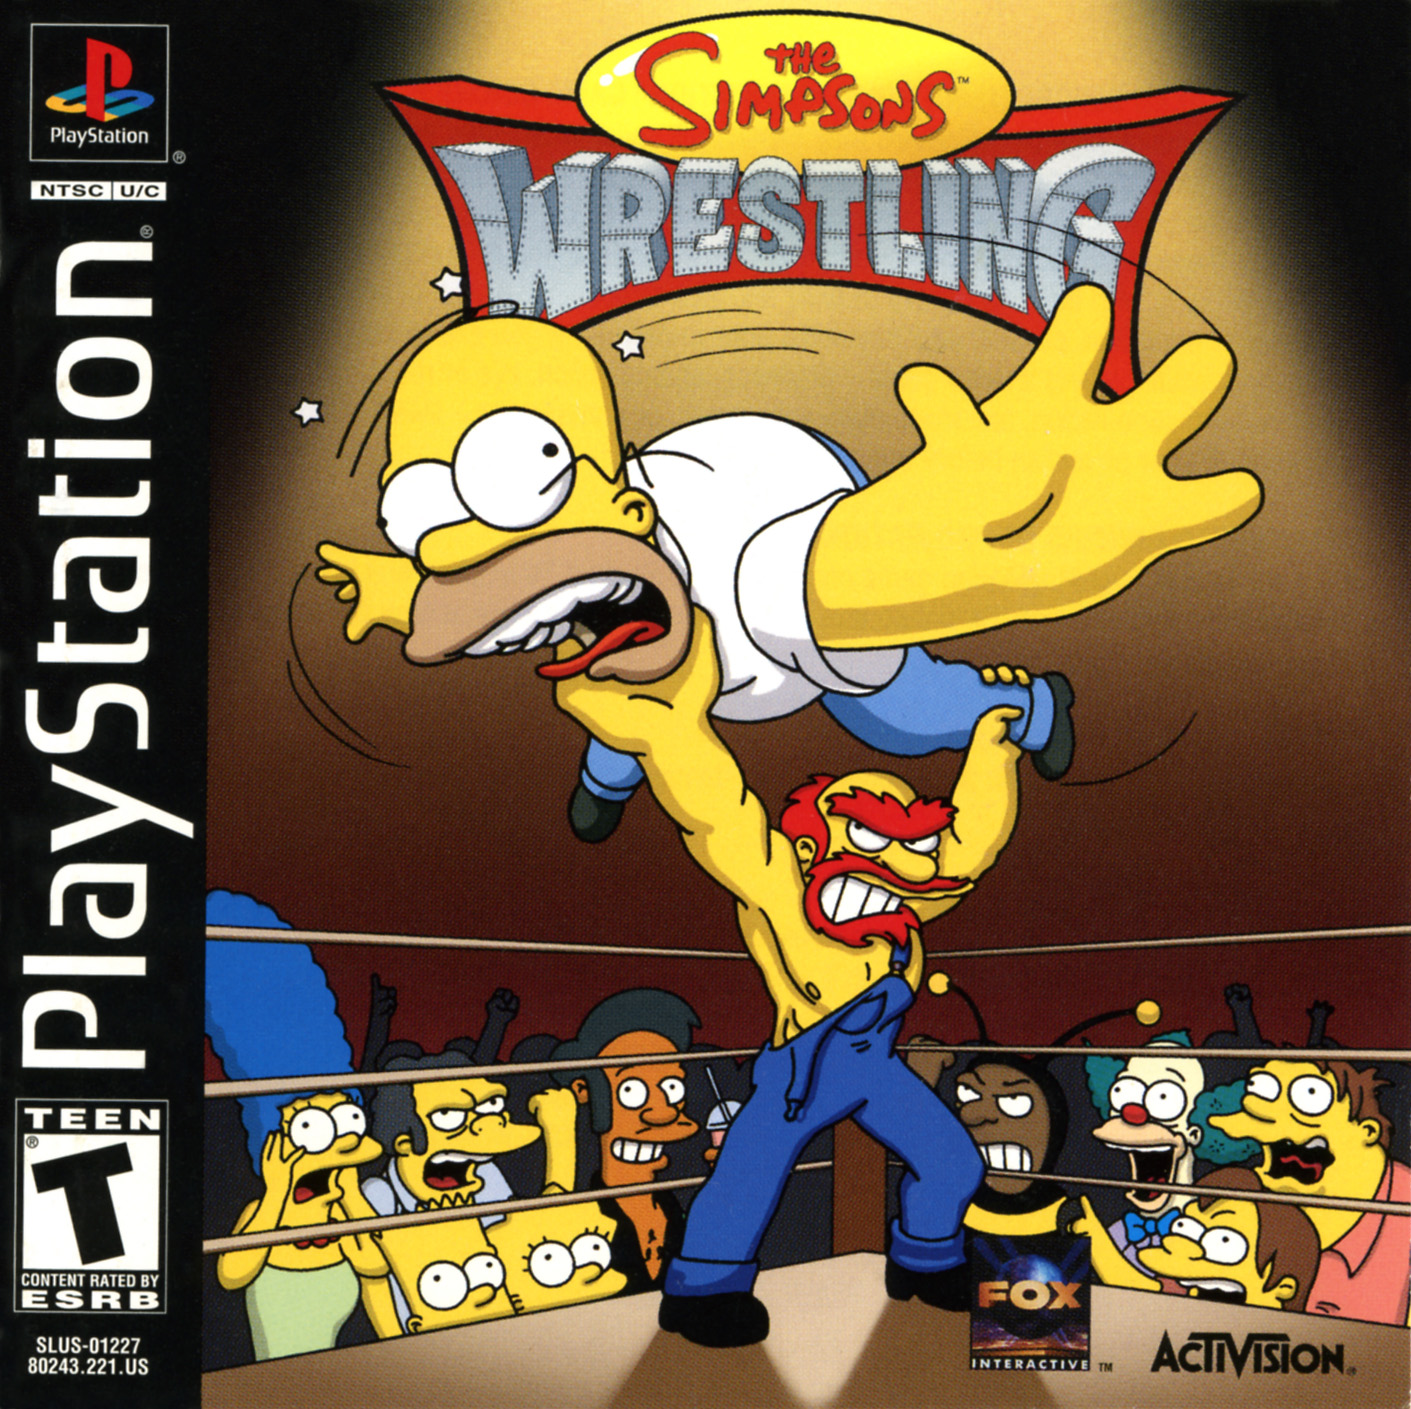 The Simpsons Wrestling - Wikisimpsons